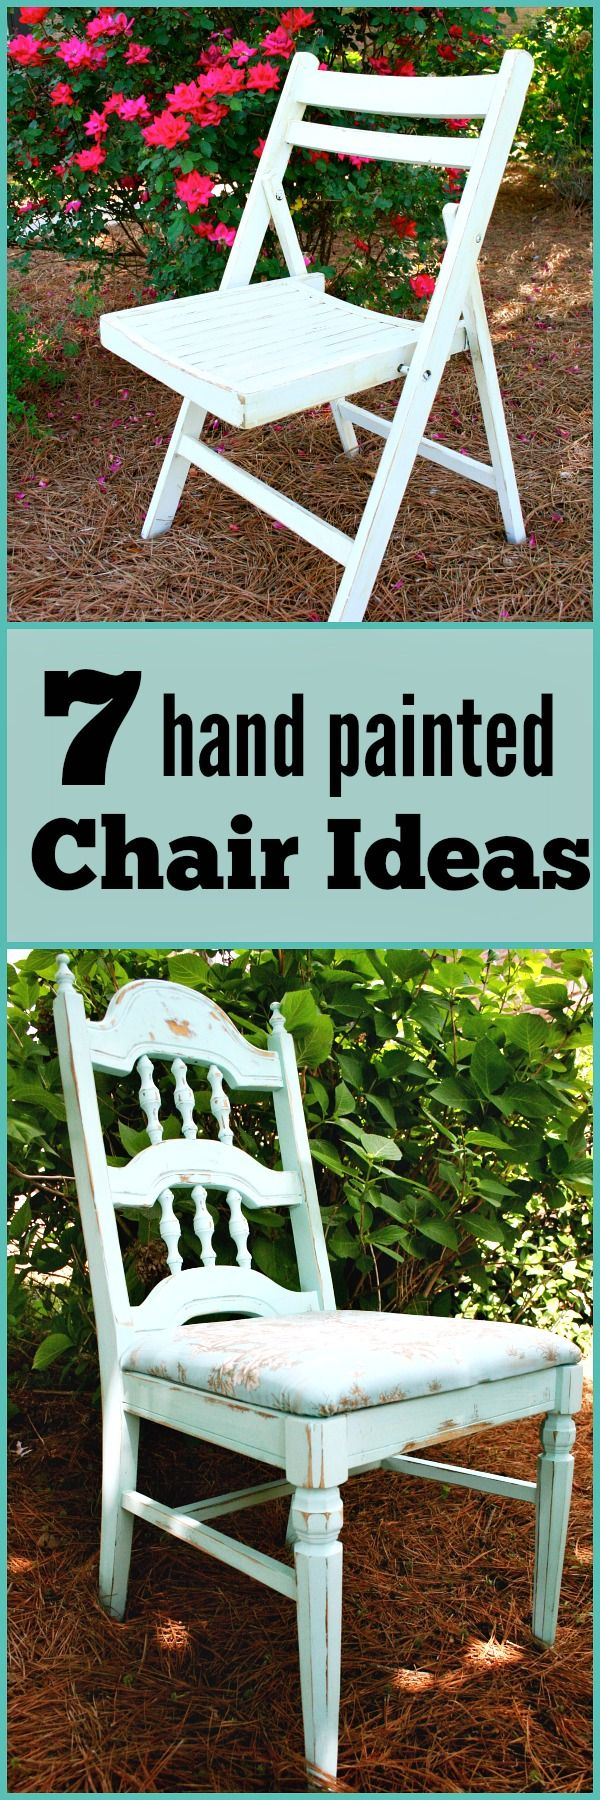 17 best ideas about hand painted chairs on pinterest for Hand painted furniture ideas